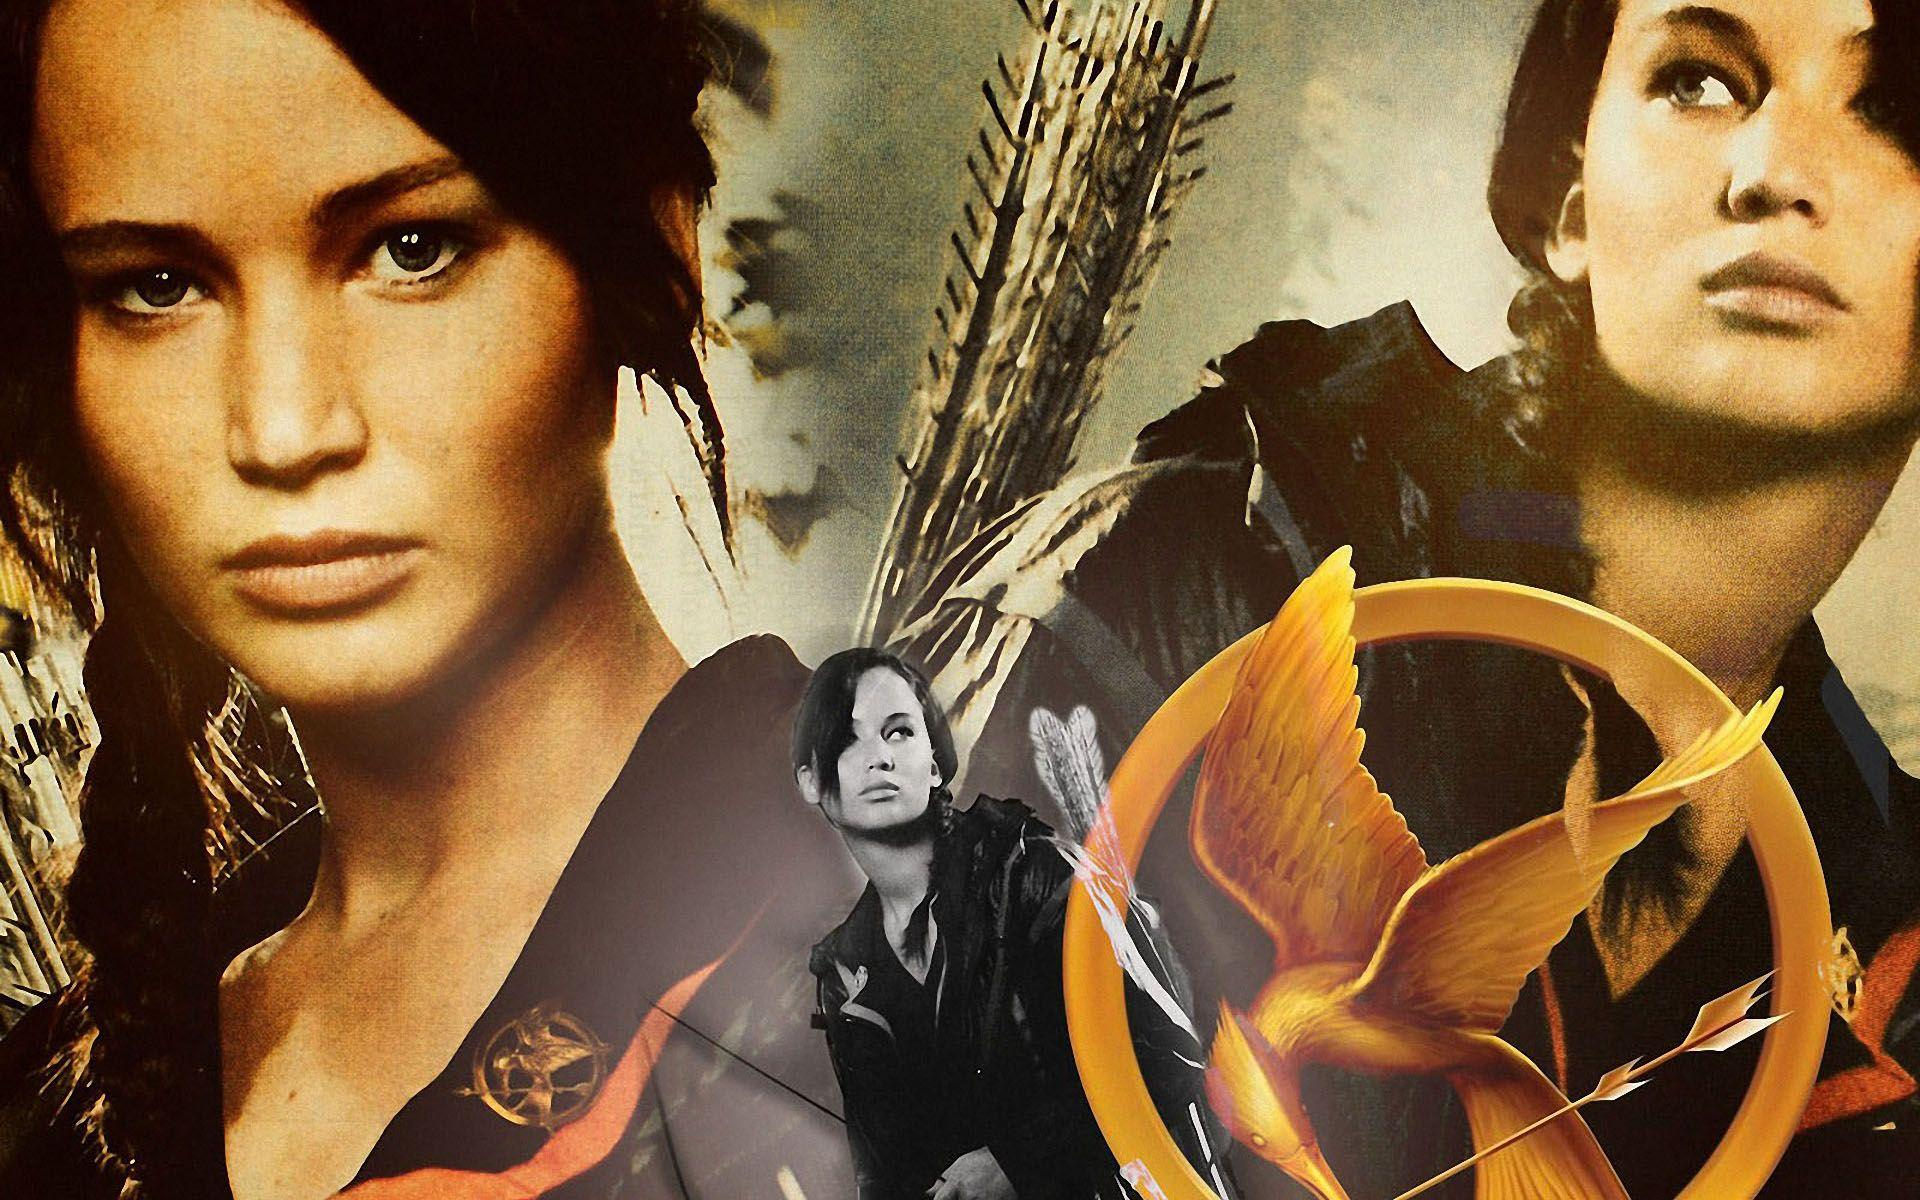 hunger games movie wallpapers - photo #22